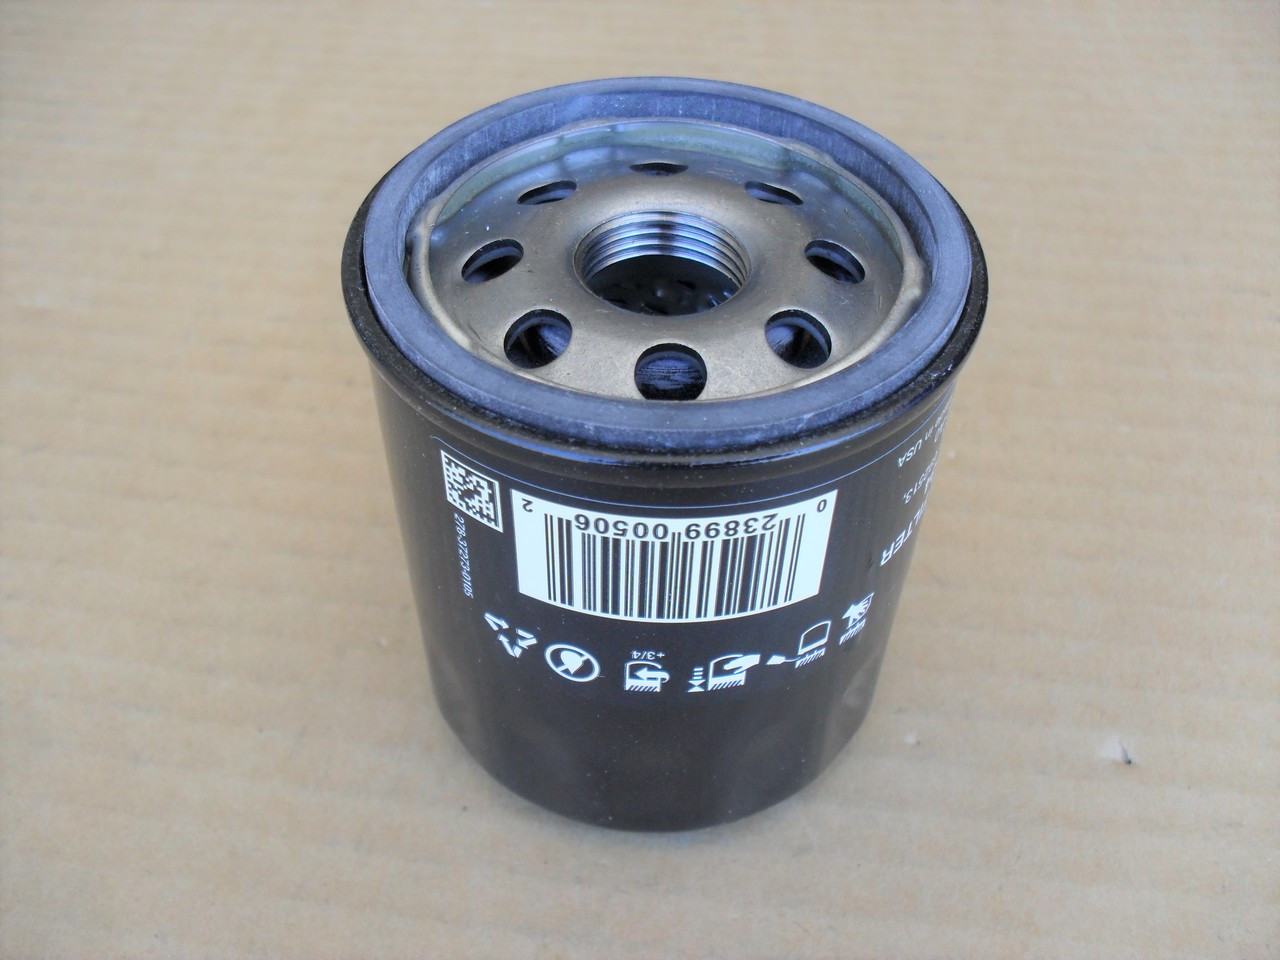 Oil Filter for Yamaha MX775, MX800, MX825 7UDE344000 7UD-E3440-00 Made In USA